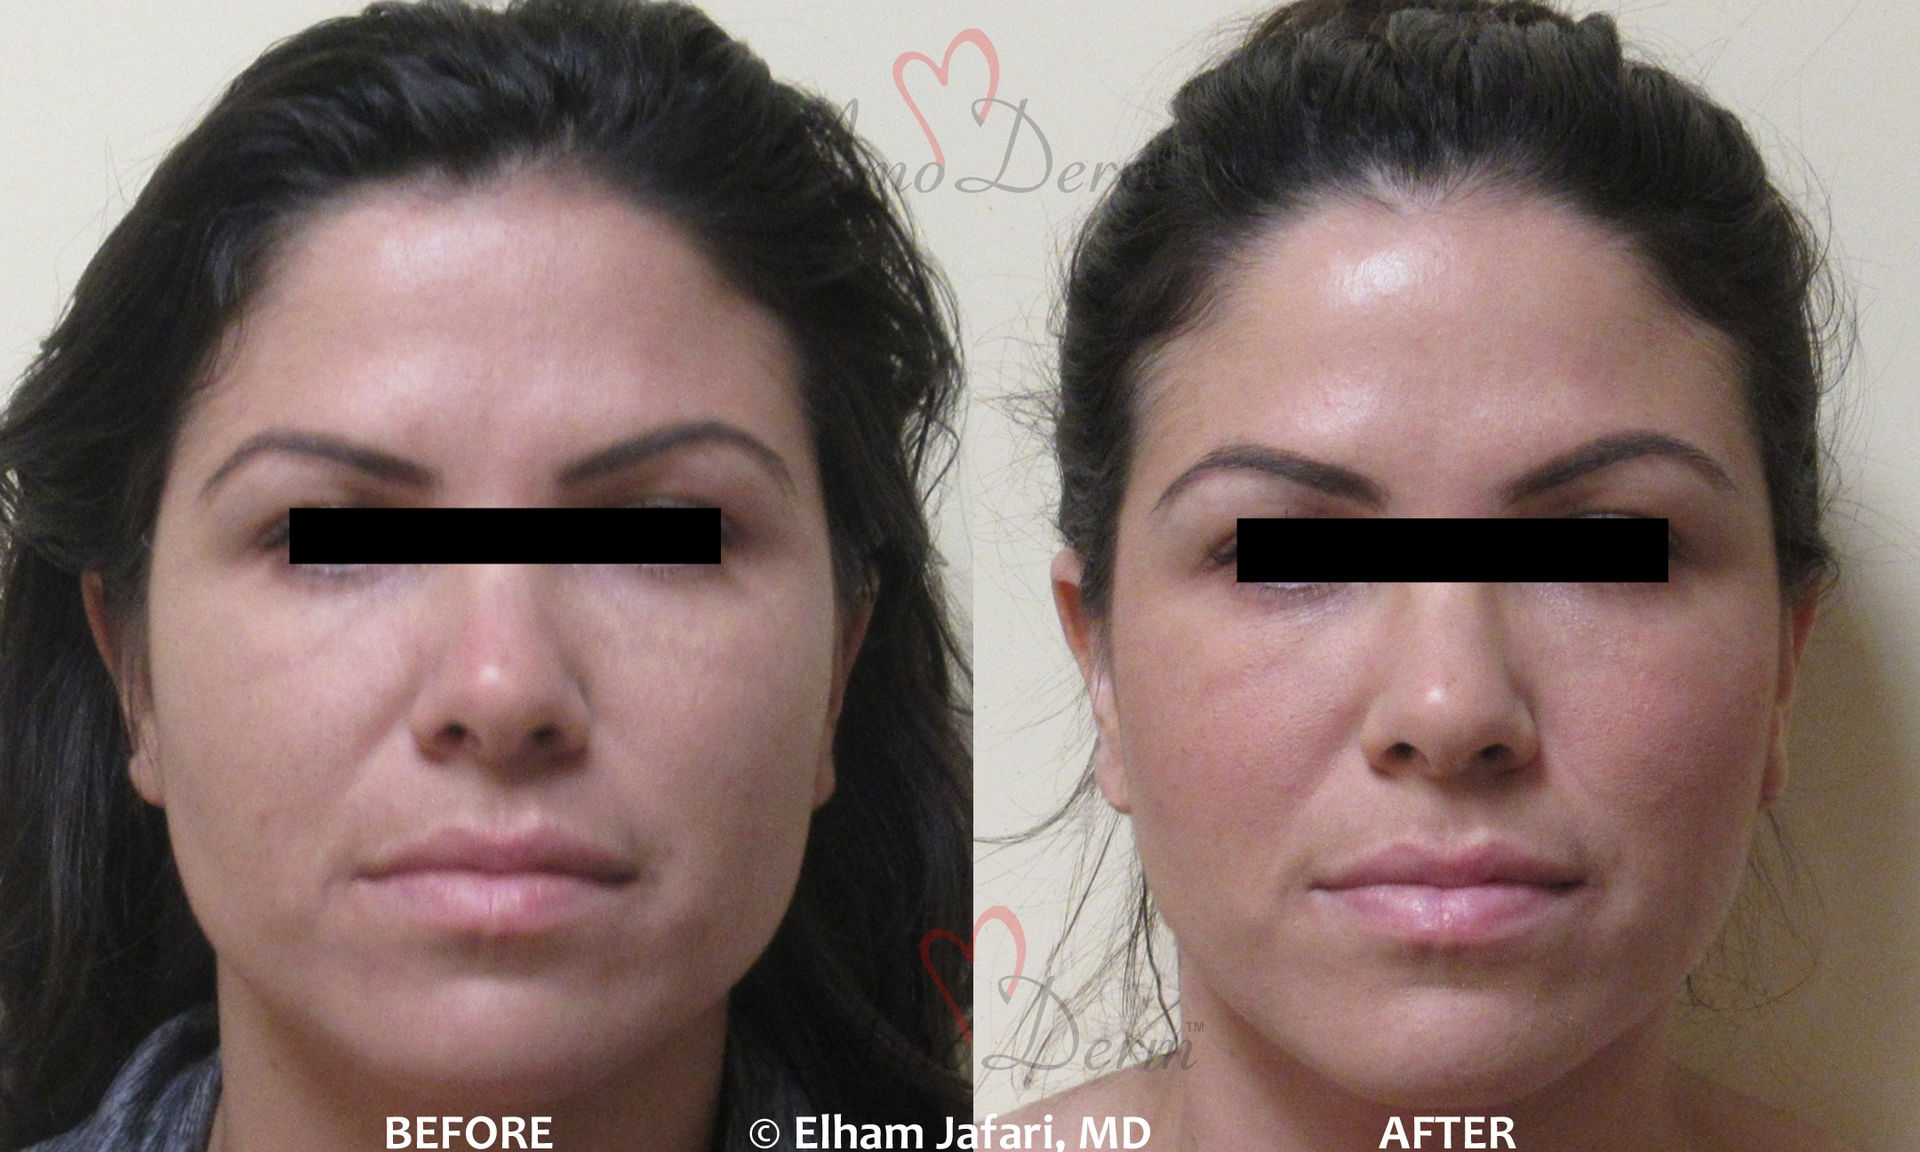 Jaw Slimming Treatment - Before and After picture